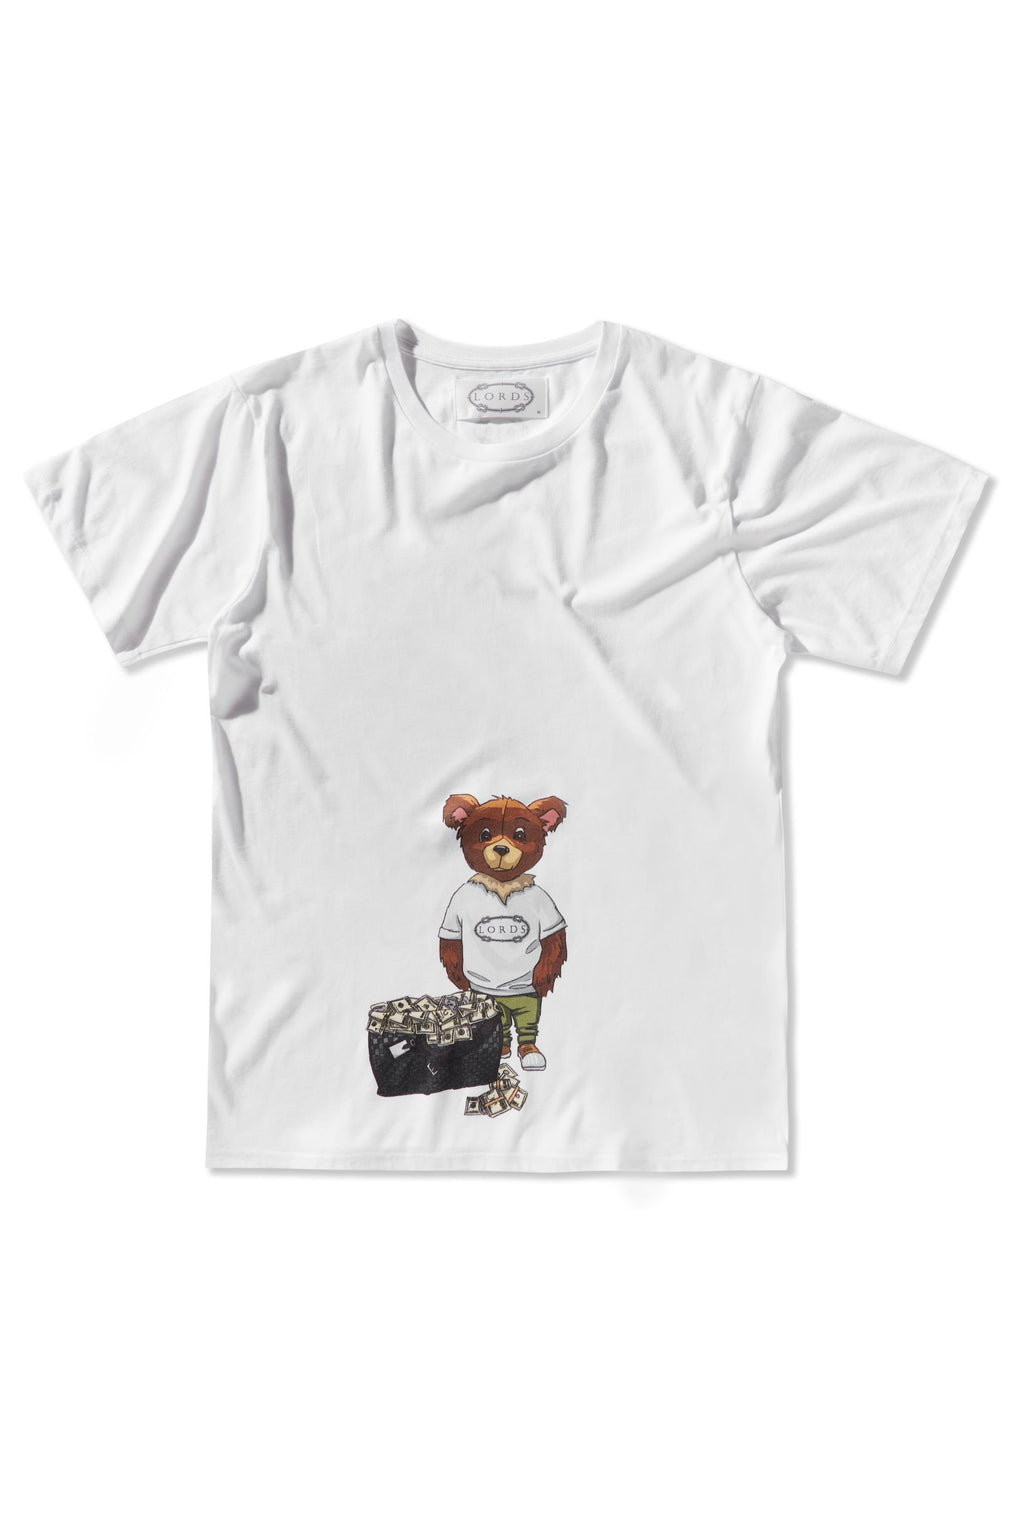 Bad Teddy LV T Shirt